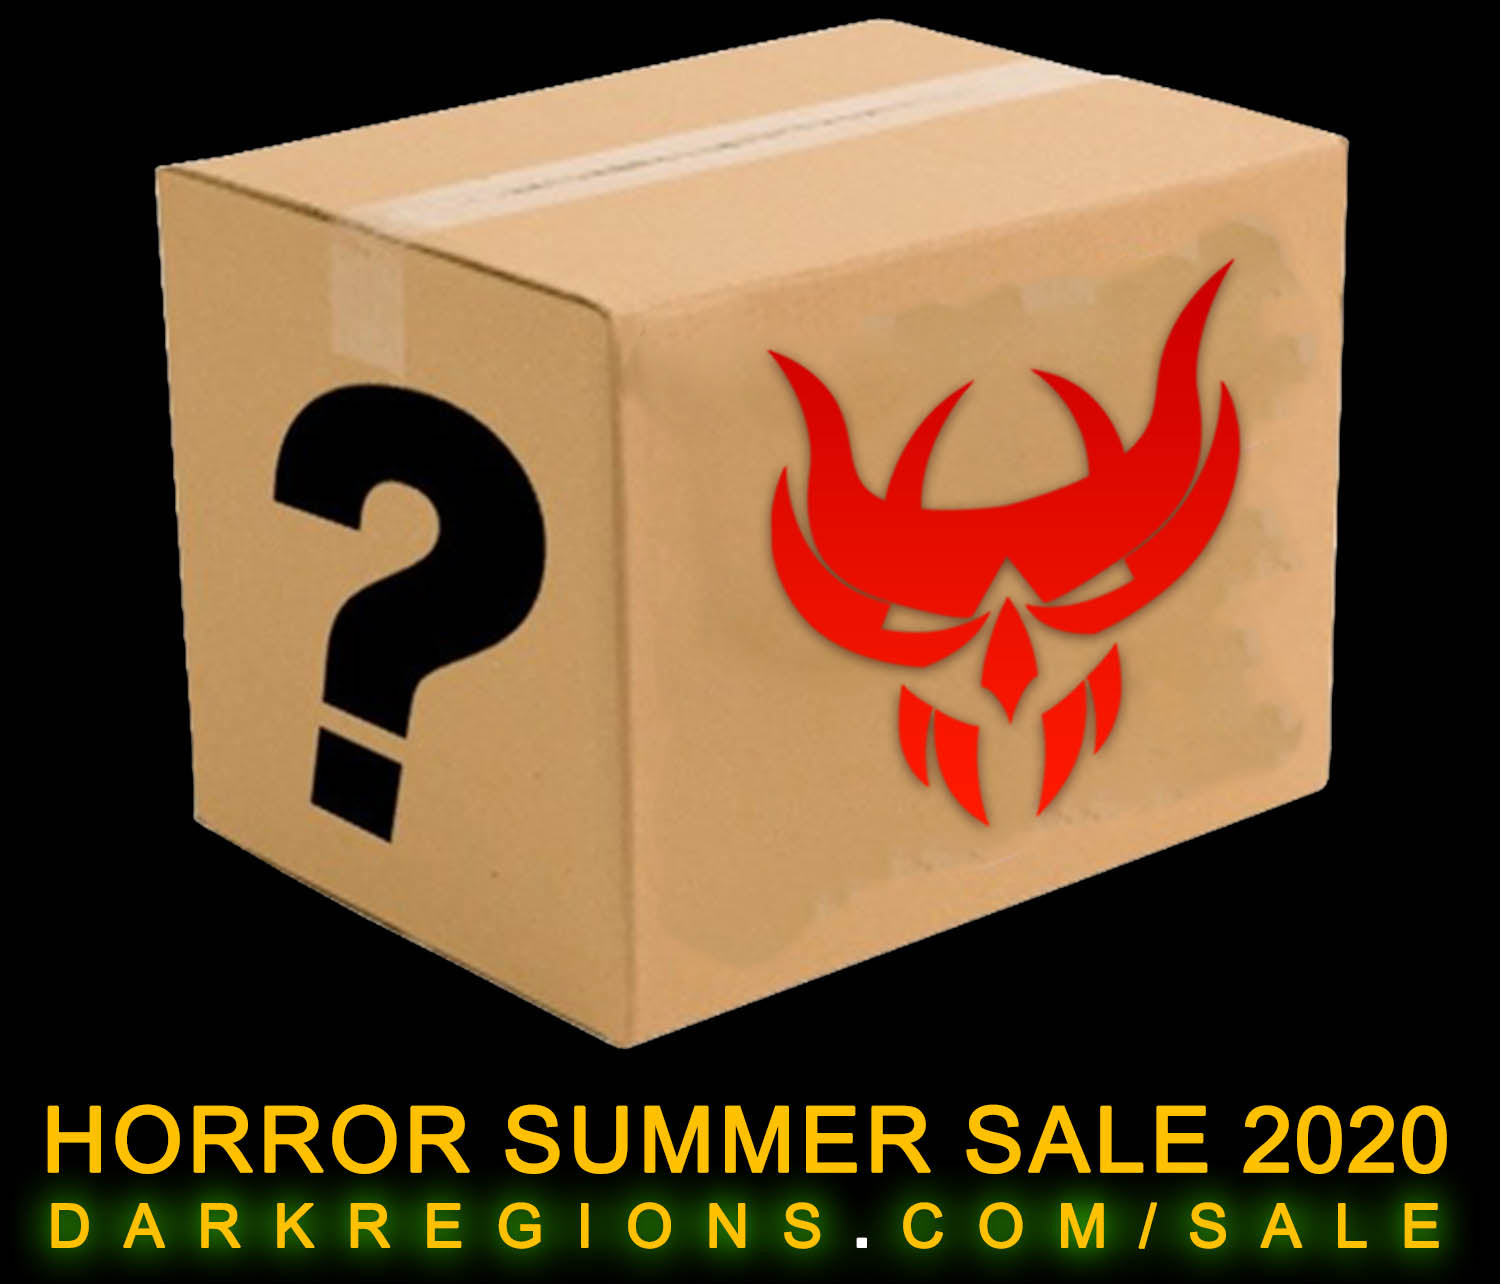 https://cdn.shopify.com/s/files/1/1858/2313/files/HORROR-SUMMER-SALE-SOCIAL-MEDIA-IMAGE.jpg?v=1591722388